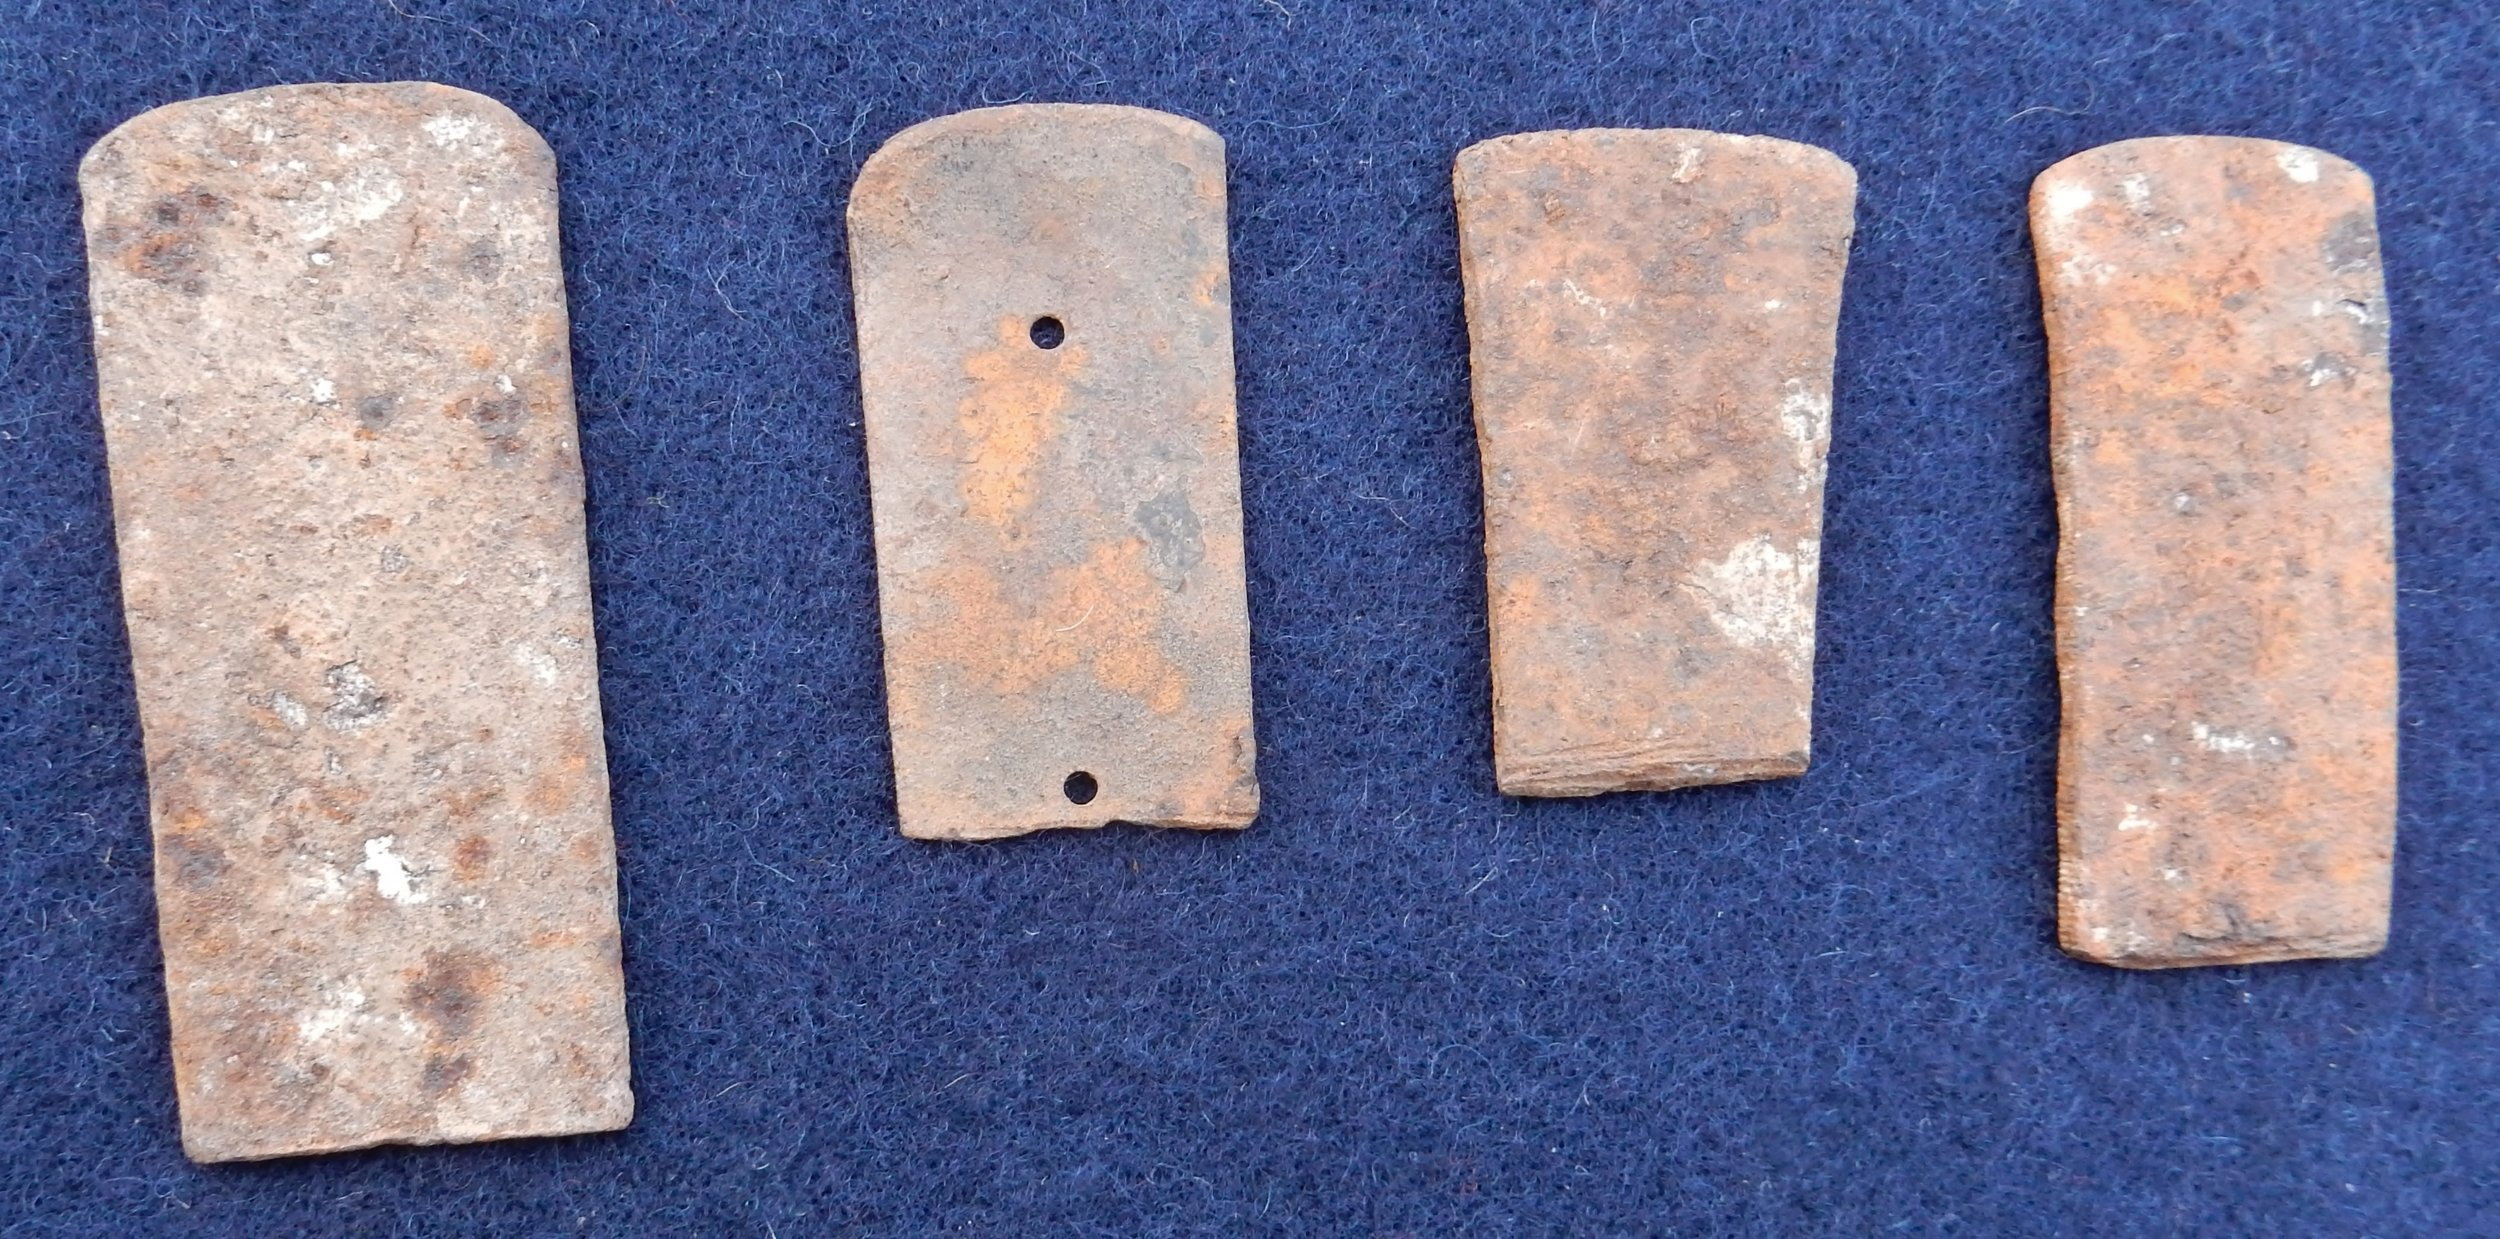 Blades of scrap metal found near Sitting Bull's camp in North Dakota